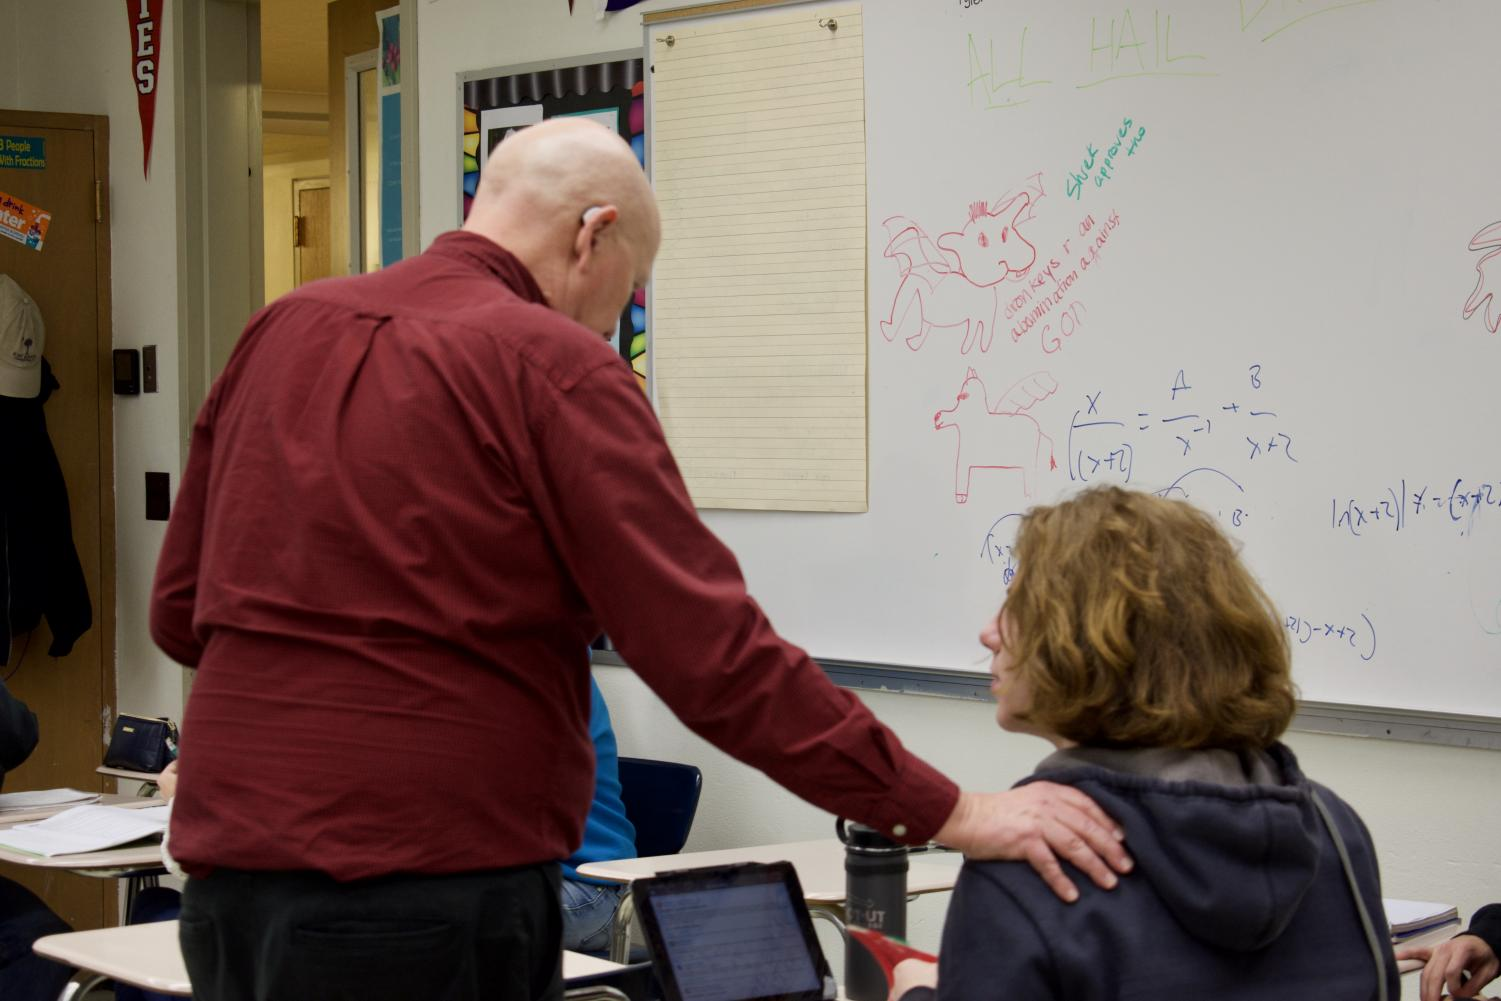 As+Educator+of+the+Year%2C+Mr.+Larry+Swanson+Leaves+a+Lasting+Impact%2C+While+Loving+What+He+Does